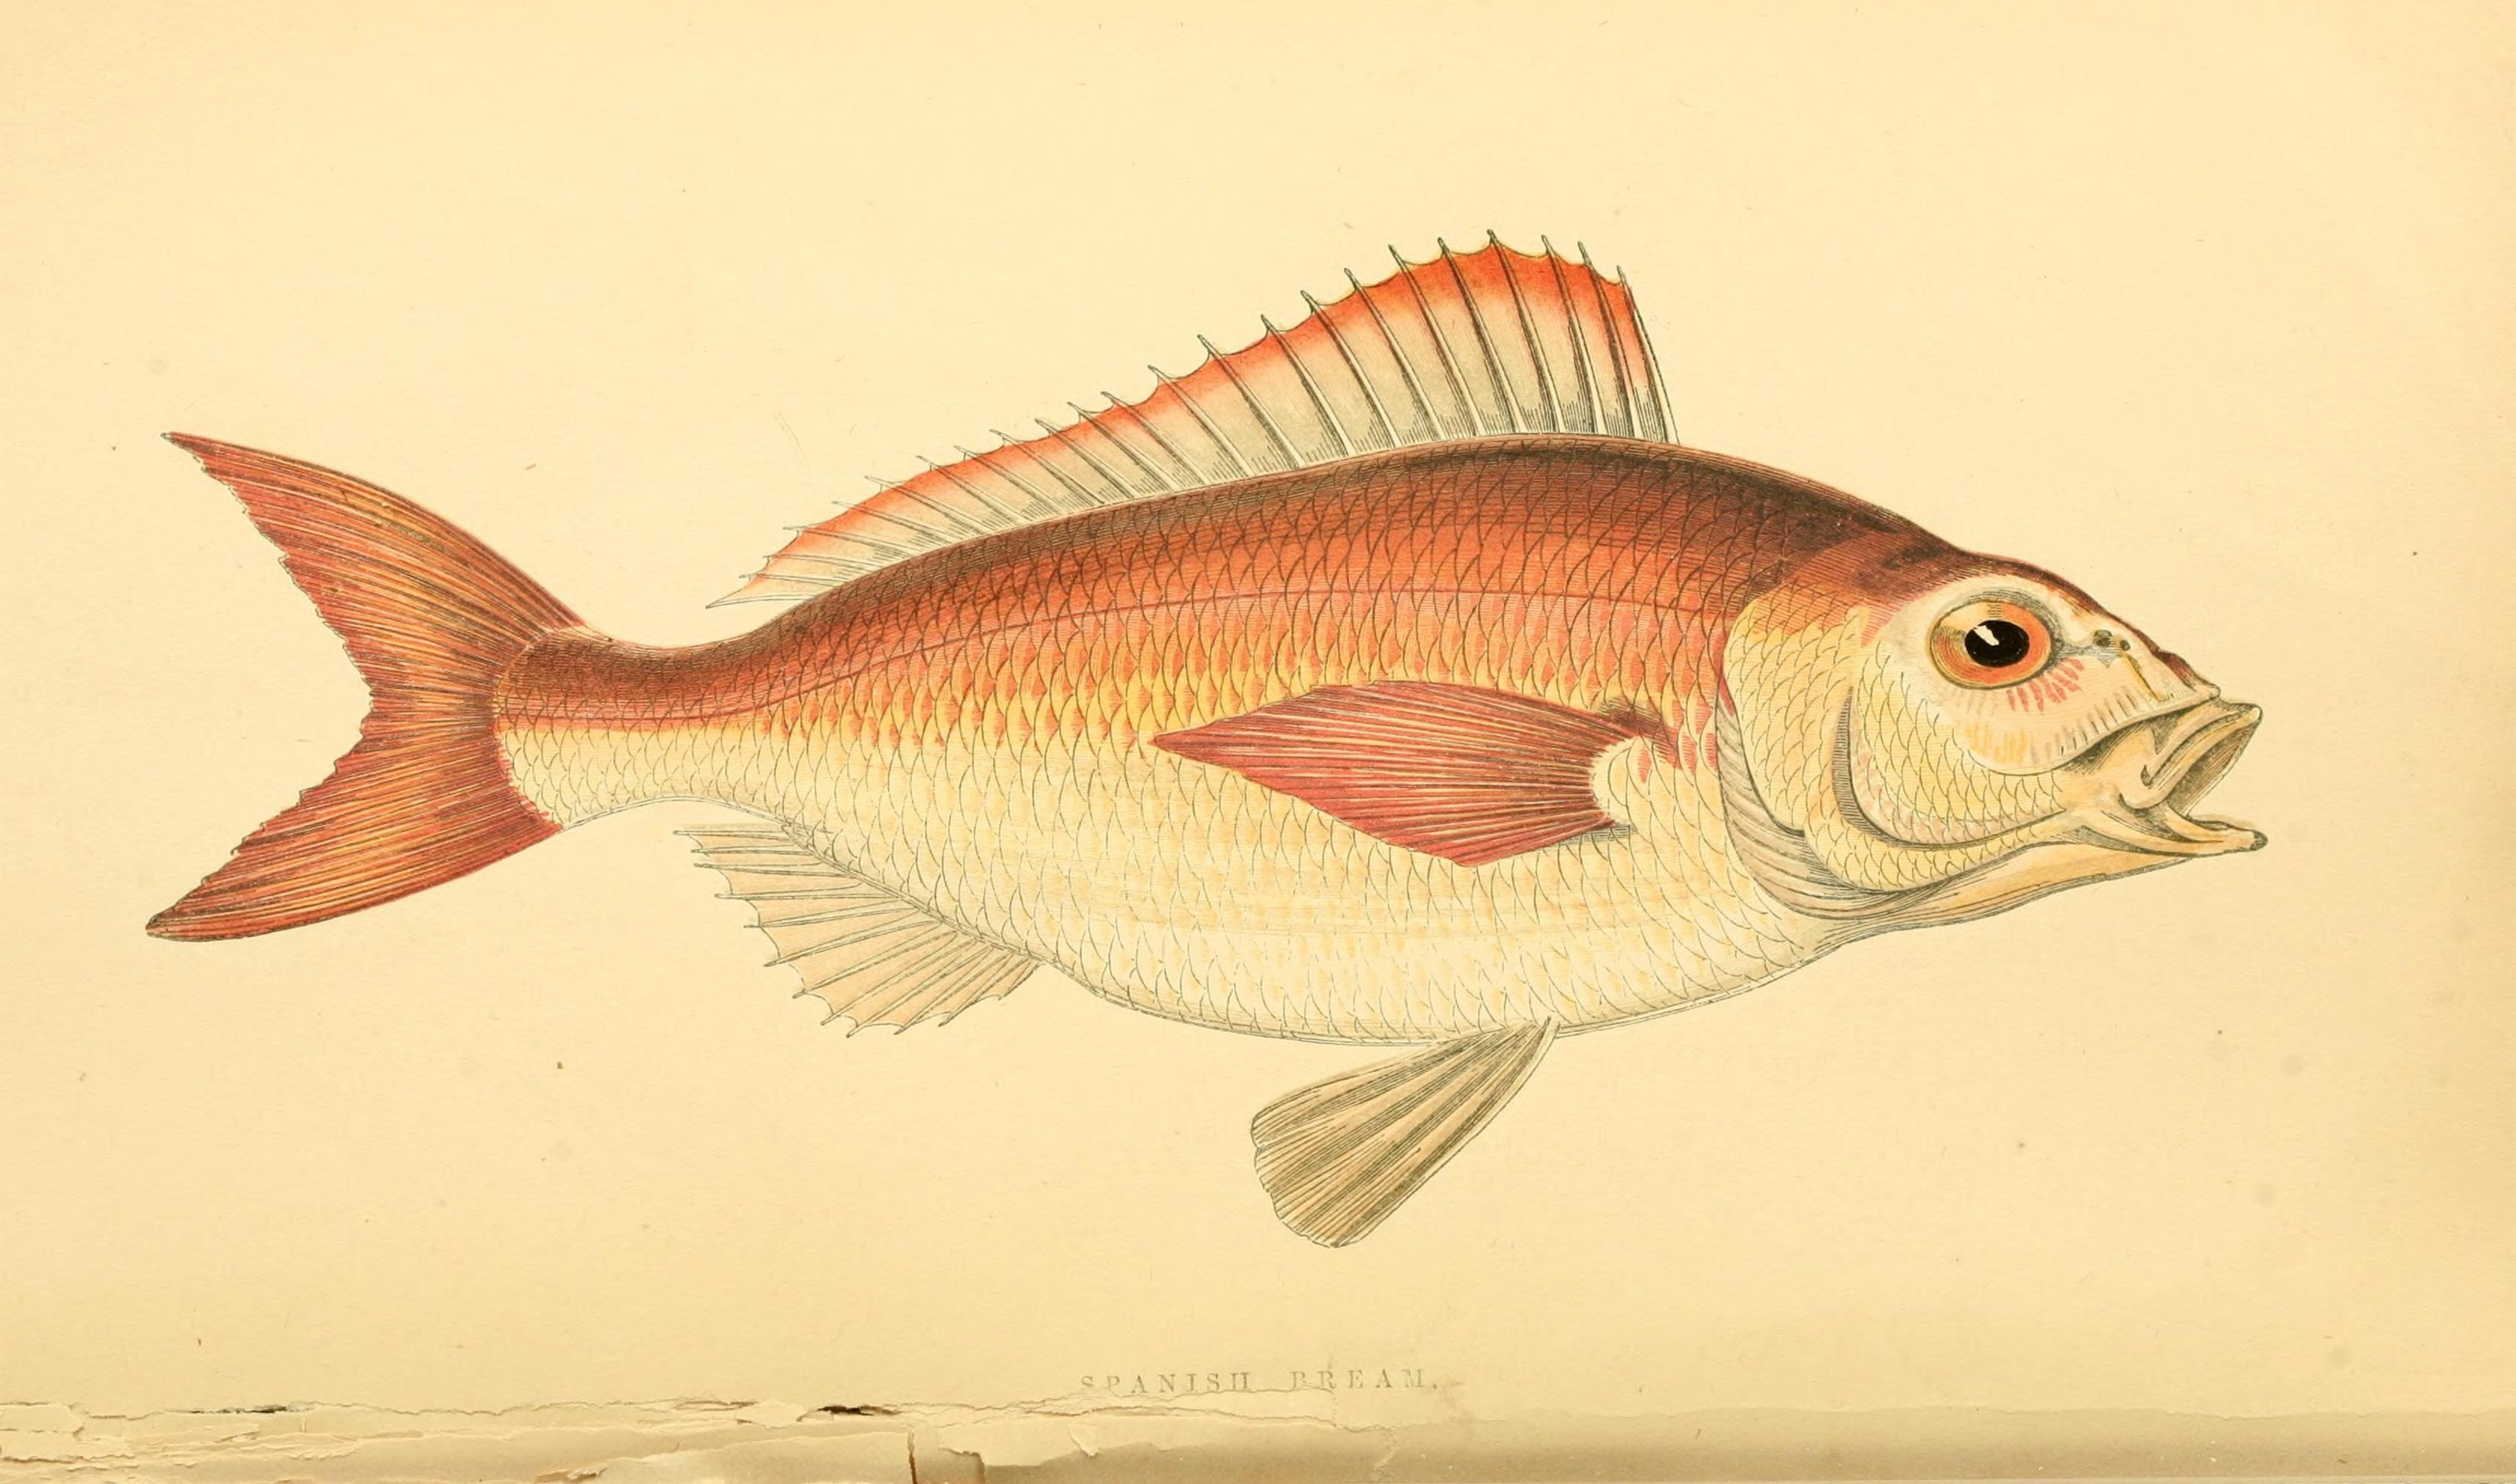 Image of Auxillary seabream